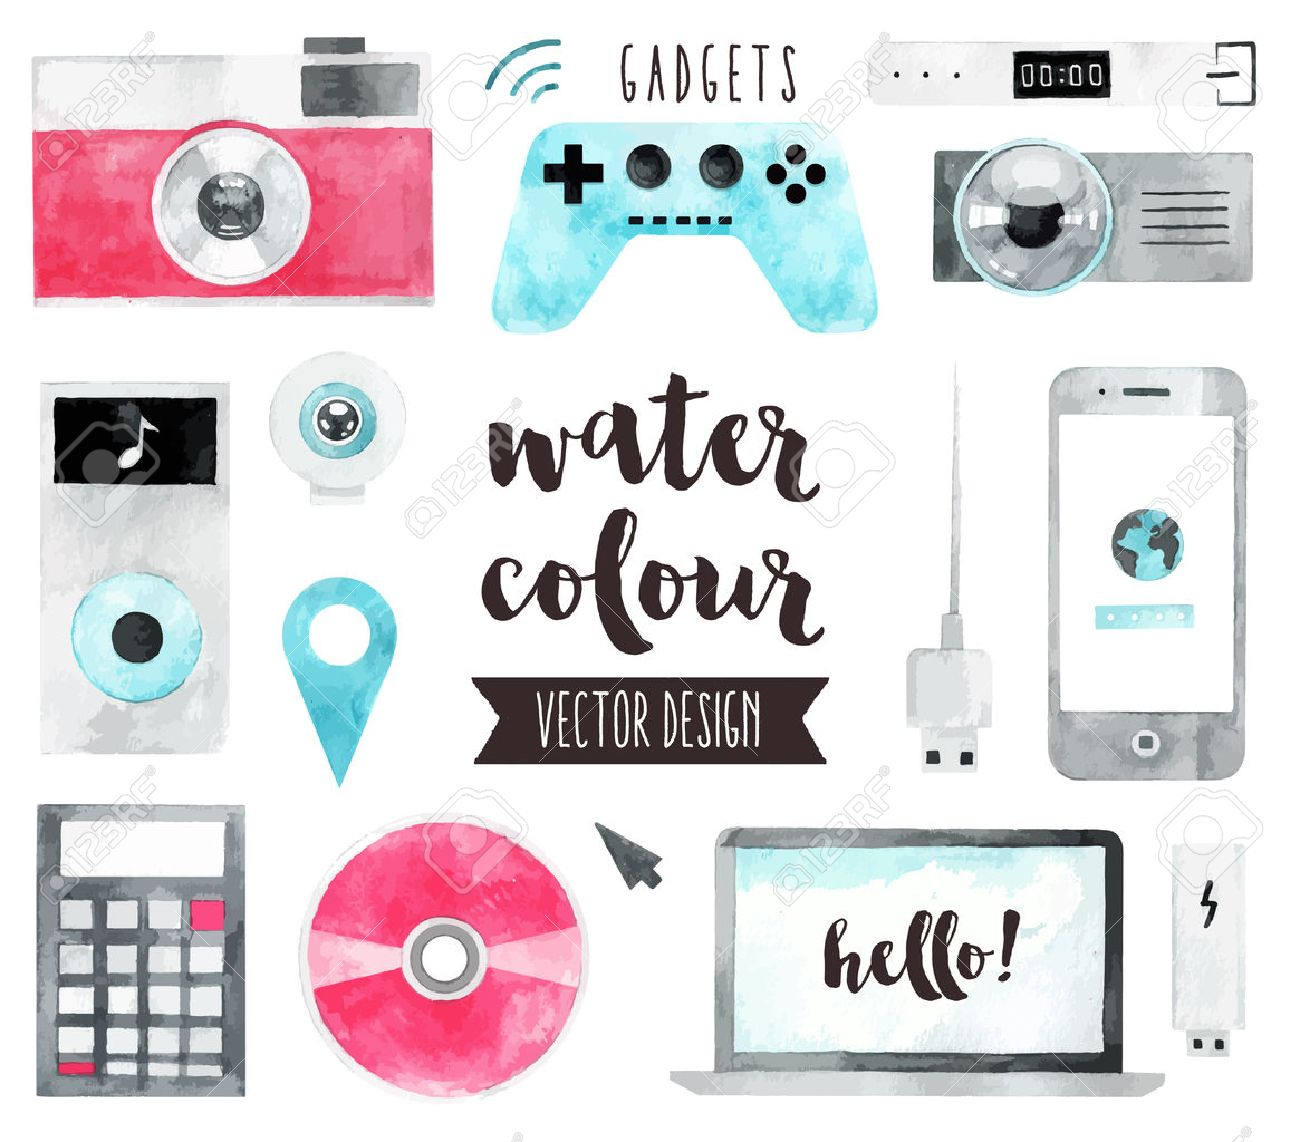 Premium quality watercolor icons set of smart media devices and personal gadgets. realistic decoration with text lettering. Flat lay watercolour objects isolated on white background. Stock Vector - 53856869